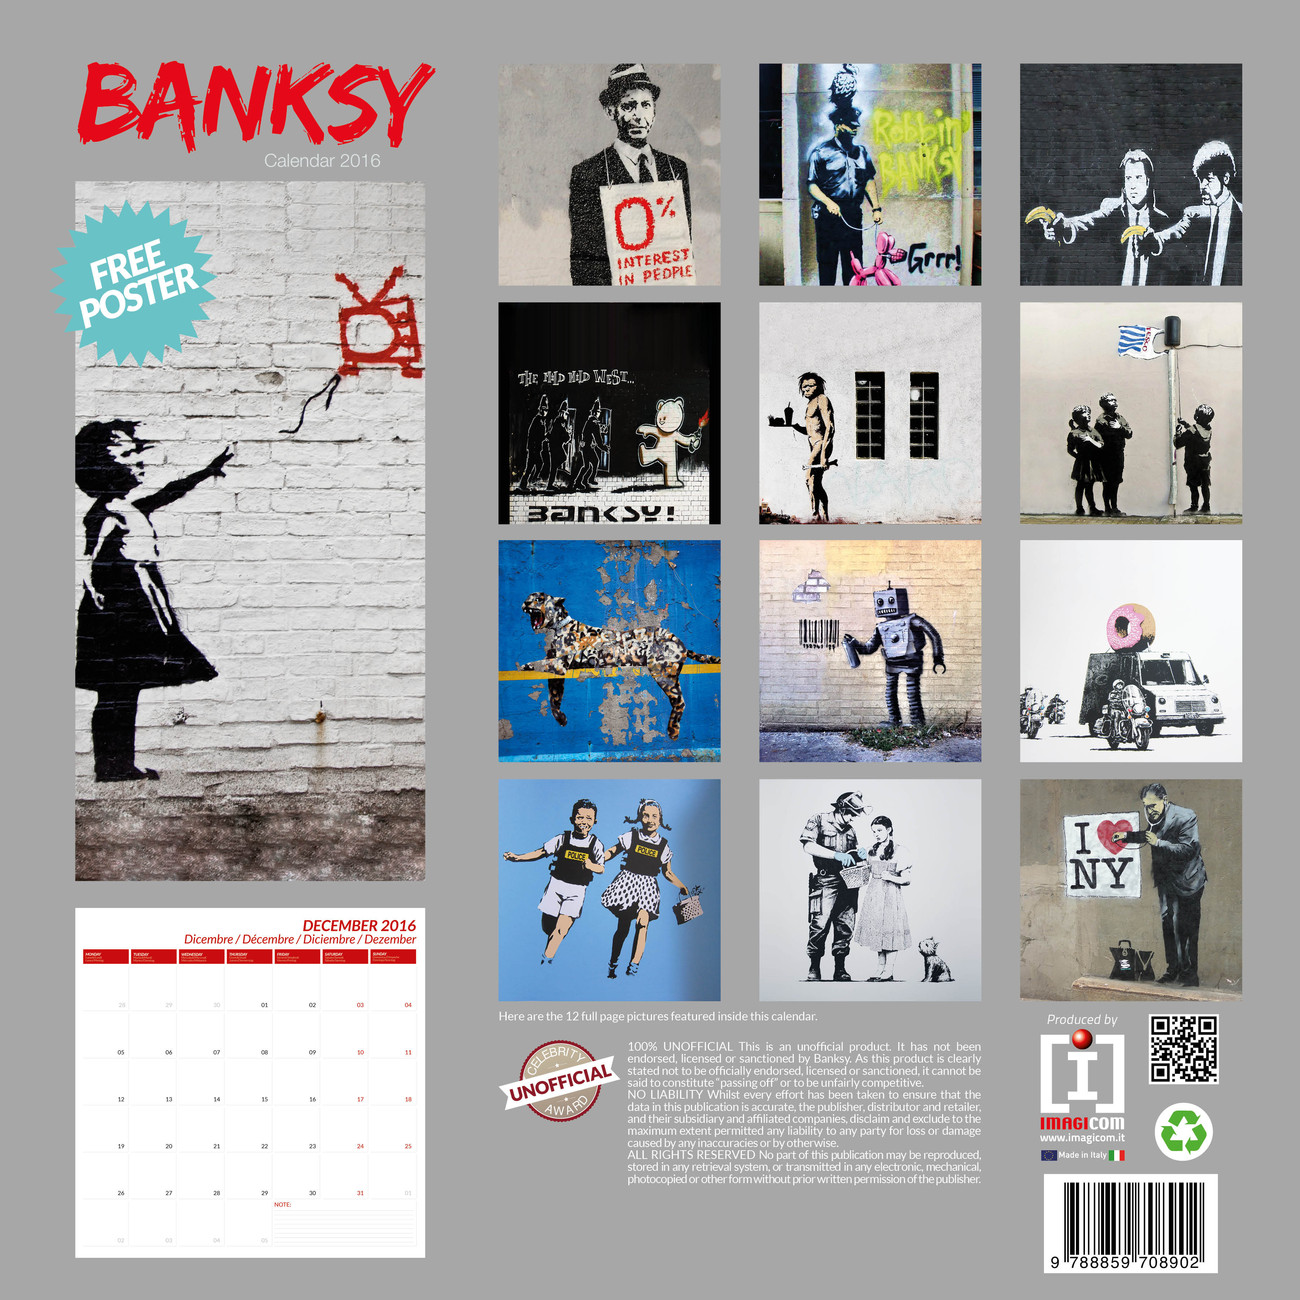 Papaya Art Calendar Uk : Banksy street art calendars on europosters